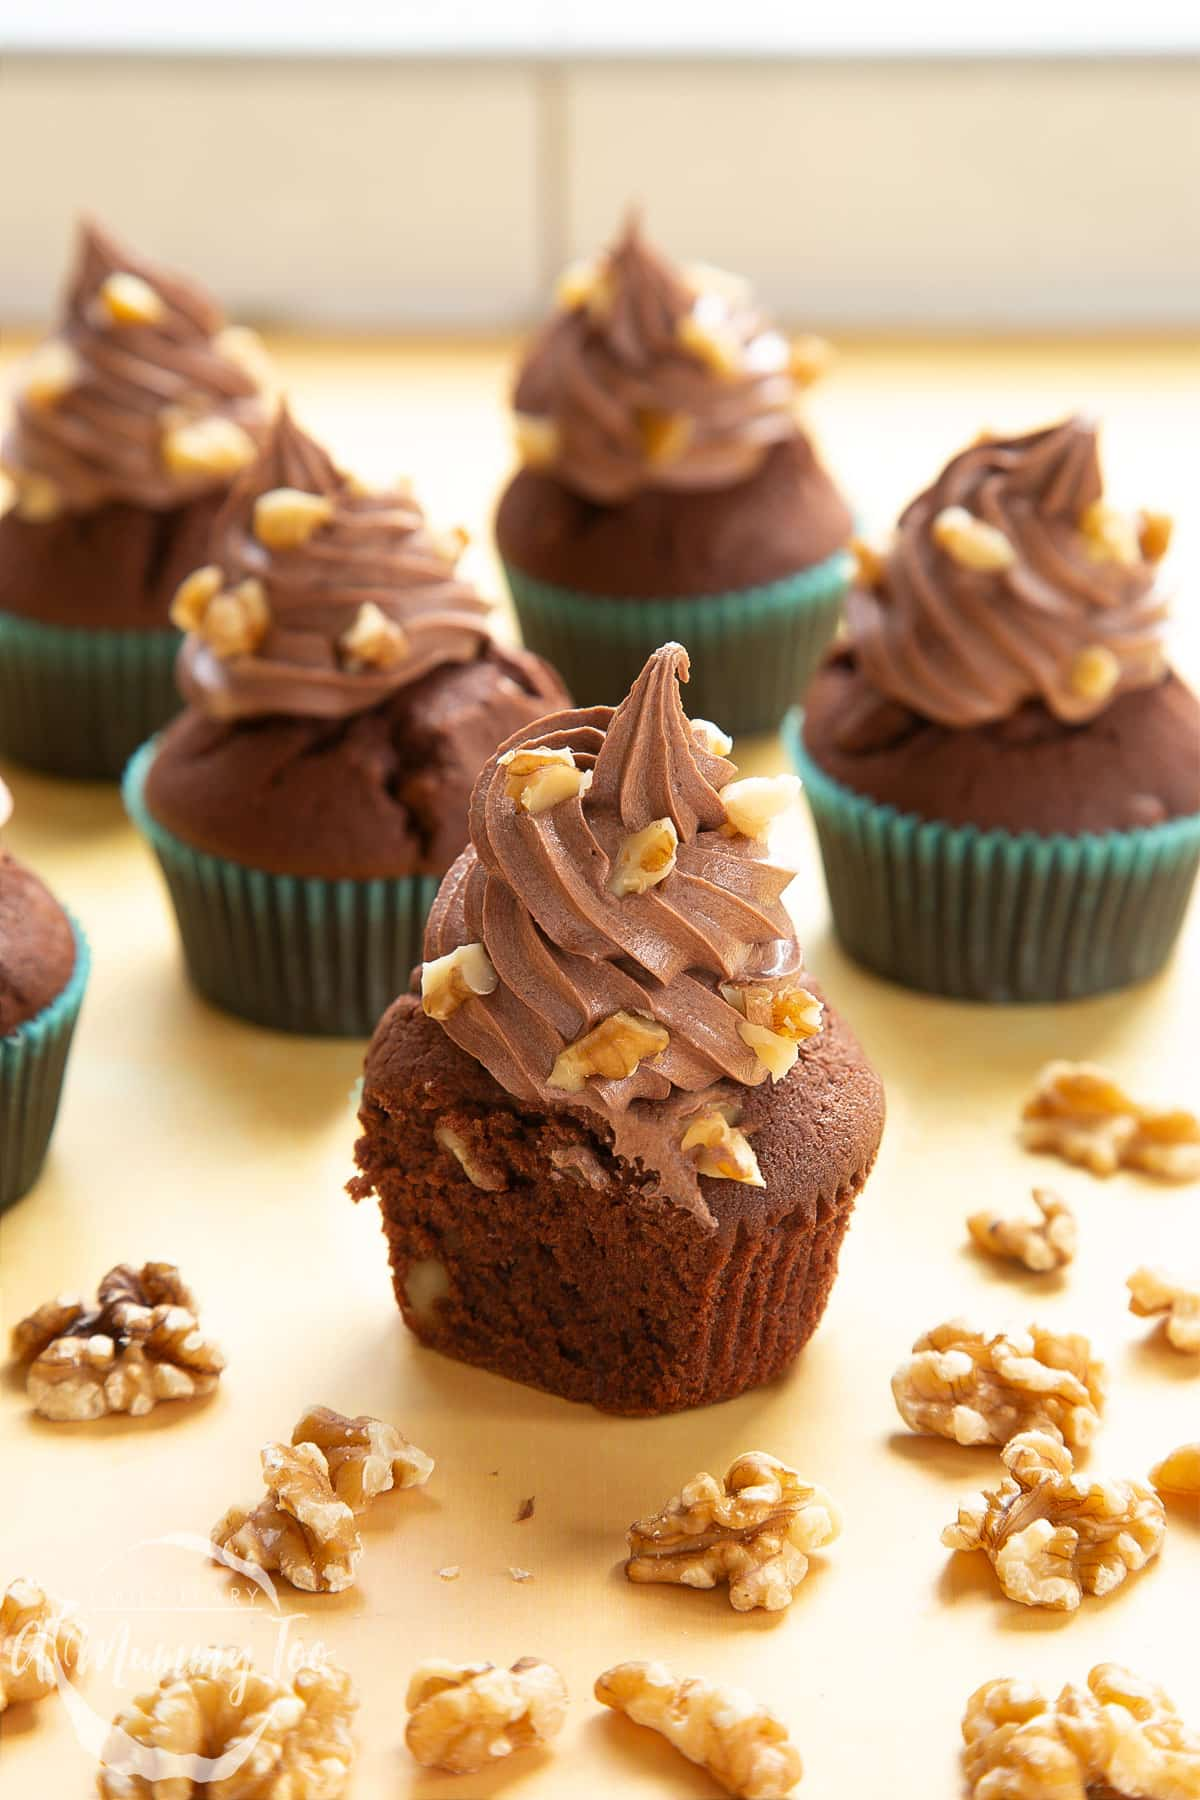 Chocolate walnut cupcakes decorated with creamy chocolate frosting. The cupcake at the fore has been cut open to show the inside.